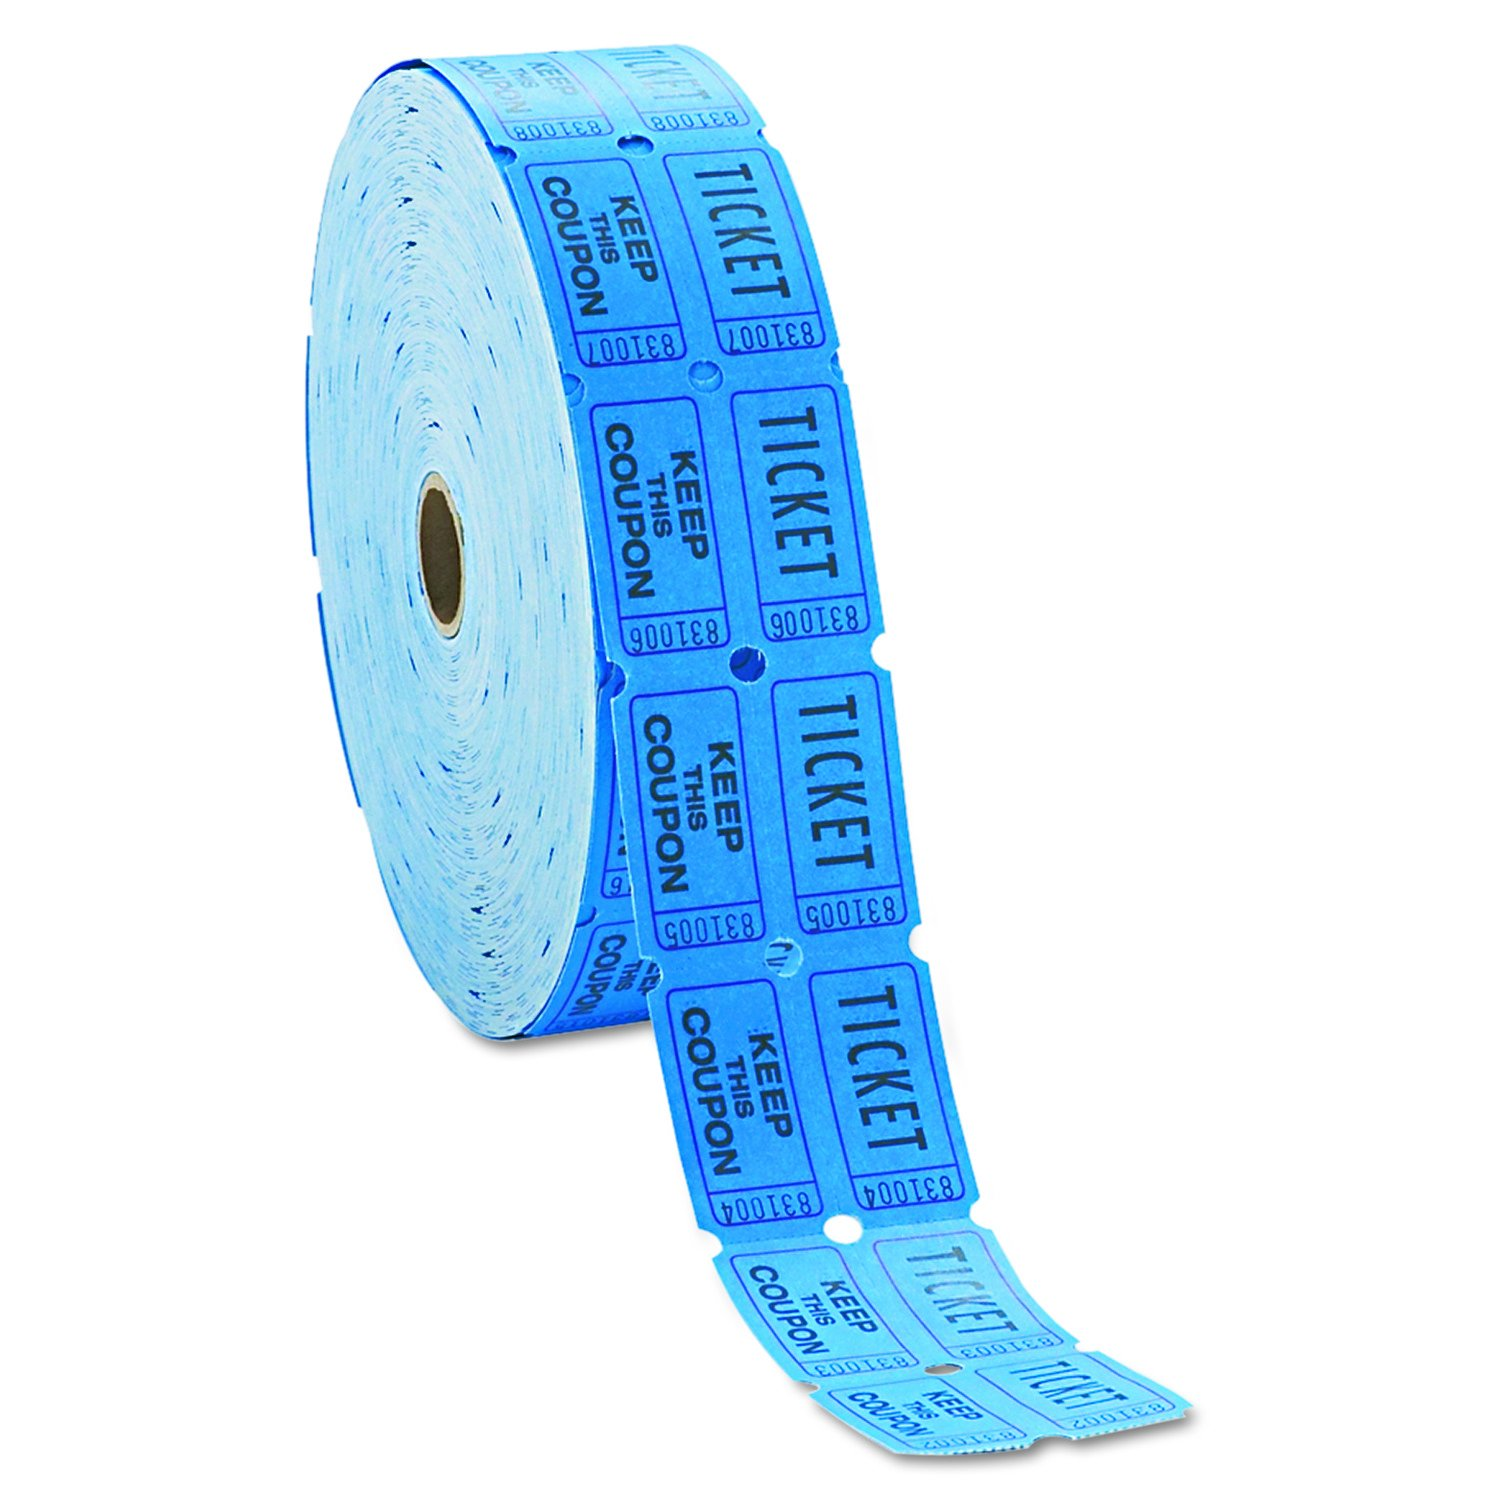 INDIANA TICKET CO. Consecutively Numbered Double Ticket Roll, Blue, 2000 Tickets per Roll